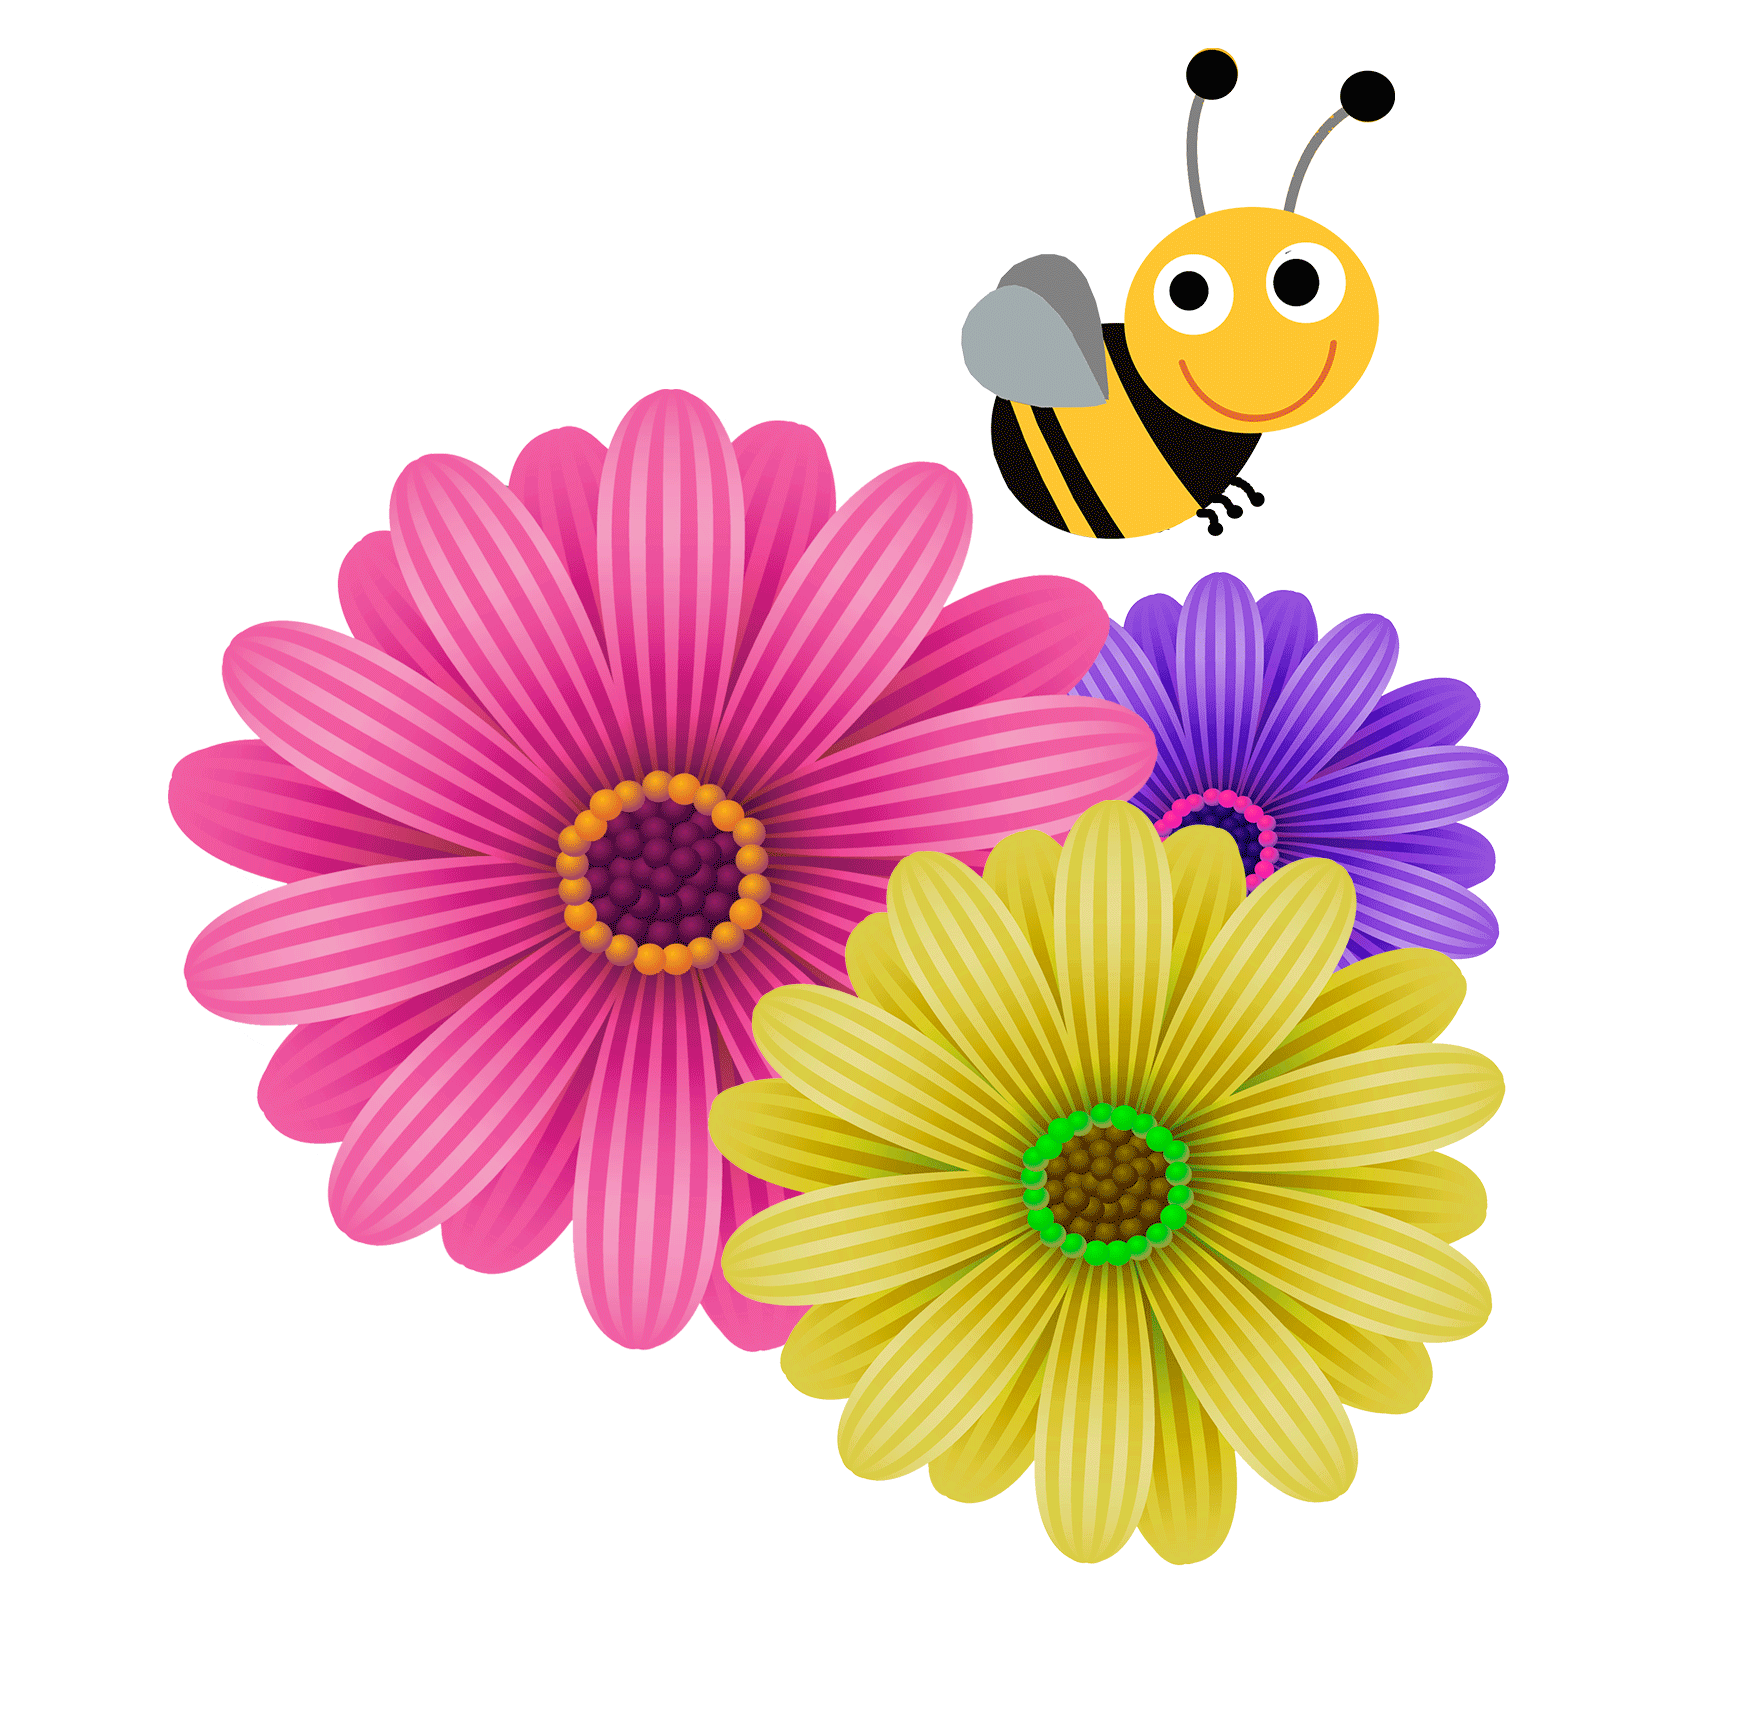 Flower corner design png. Floral google search flowers